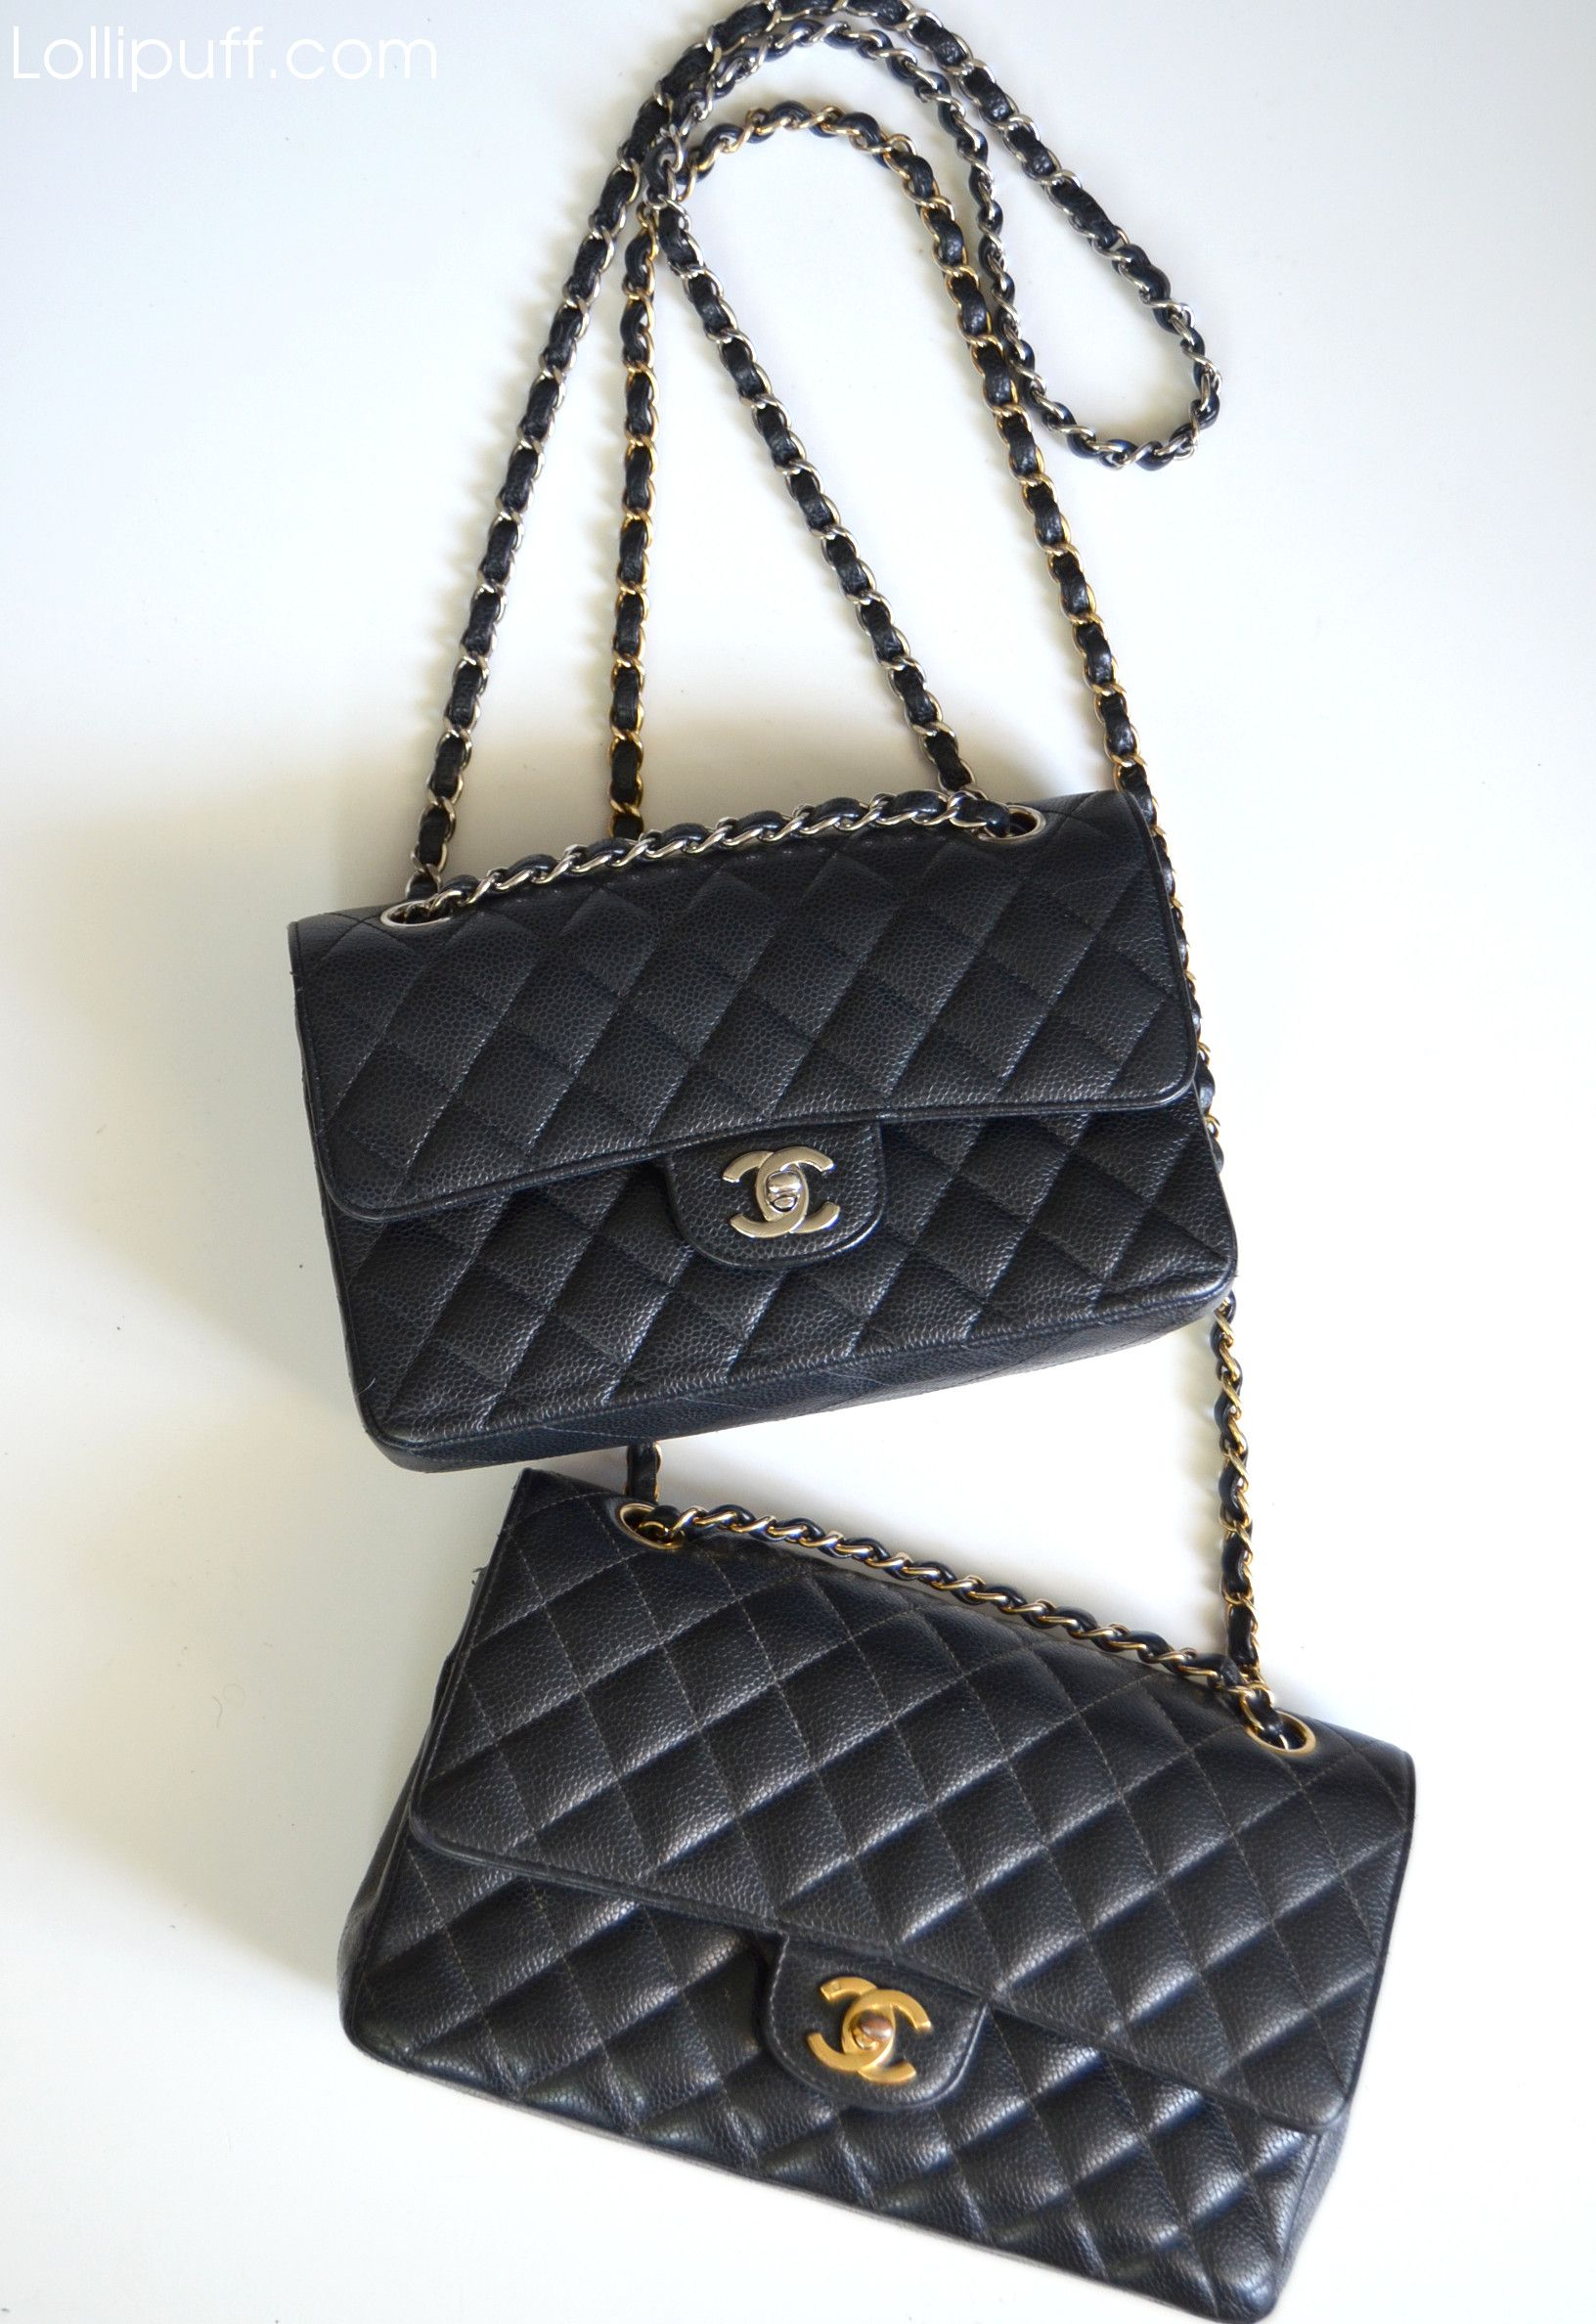 The Chanel double flap is arguably the most iconic designer bag ... : chanel quilted small bag - Adamdwight.com